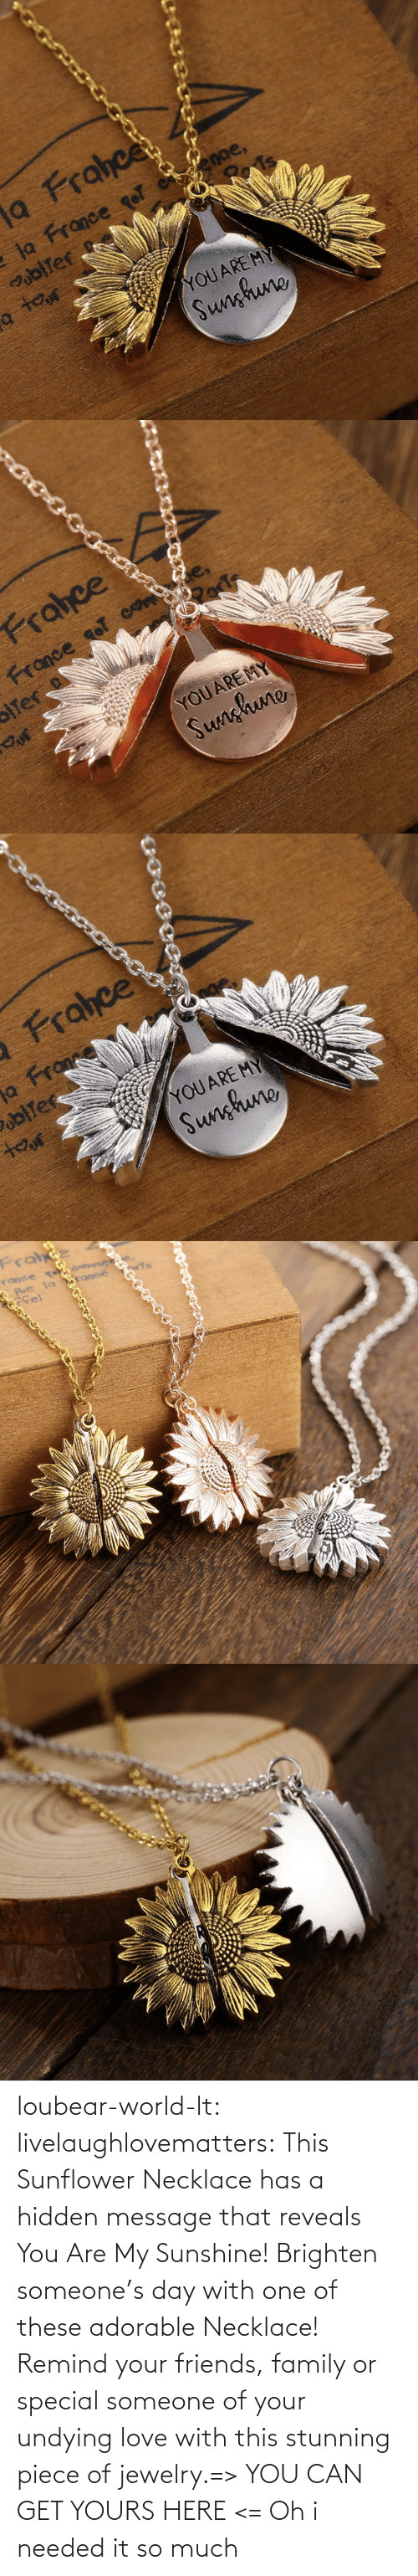 tumblr: loubear-world-lt:  livelaughlovematters:  This Sunflower Necklace has a hidden message that reveals You Are My Sunshine! Brighten someone's day with one of these adorable Necklace! Remind your friends, family or special someone of your undying love with this stunning piece of jewelry.=> YOU CAN GET YOURS HERE <=   Oh i needed it so much